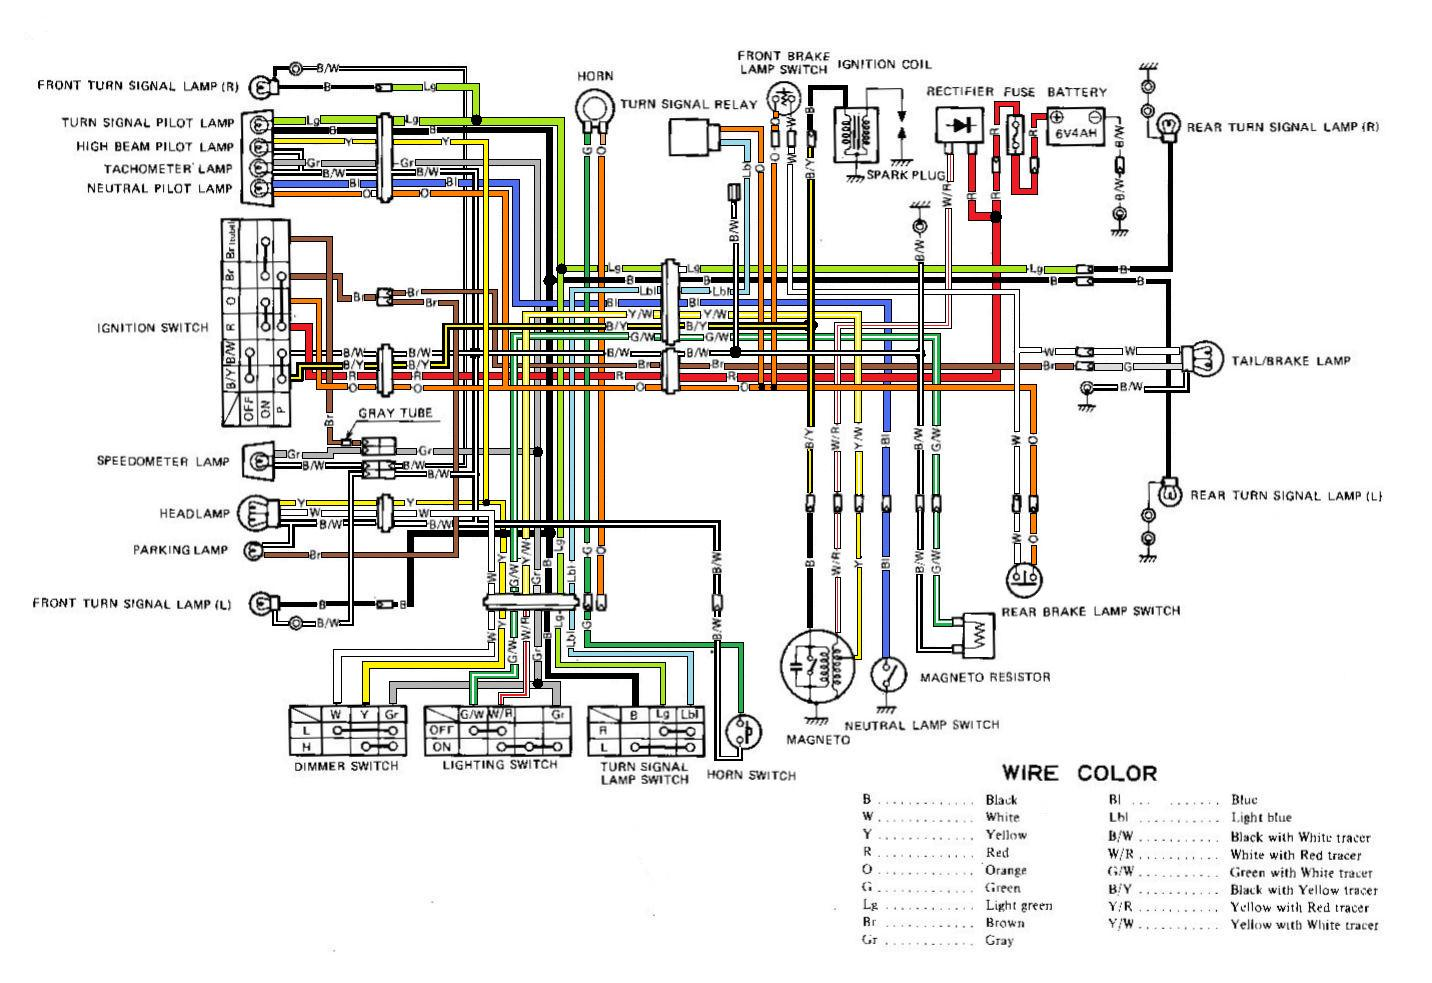 Suzuki Gt500 Wiring Diagram Trusted Diagrams Carry T500 U2022 Electrical For Motorcycles